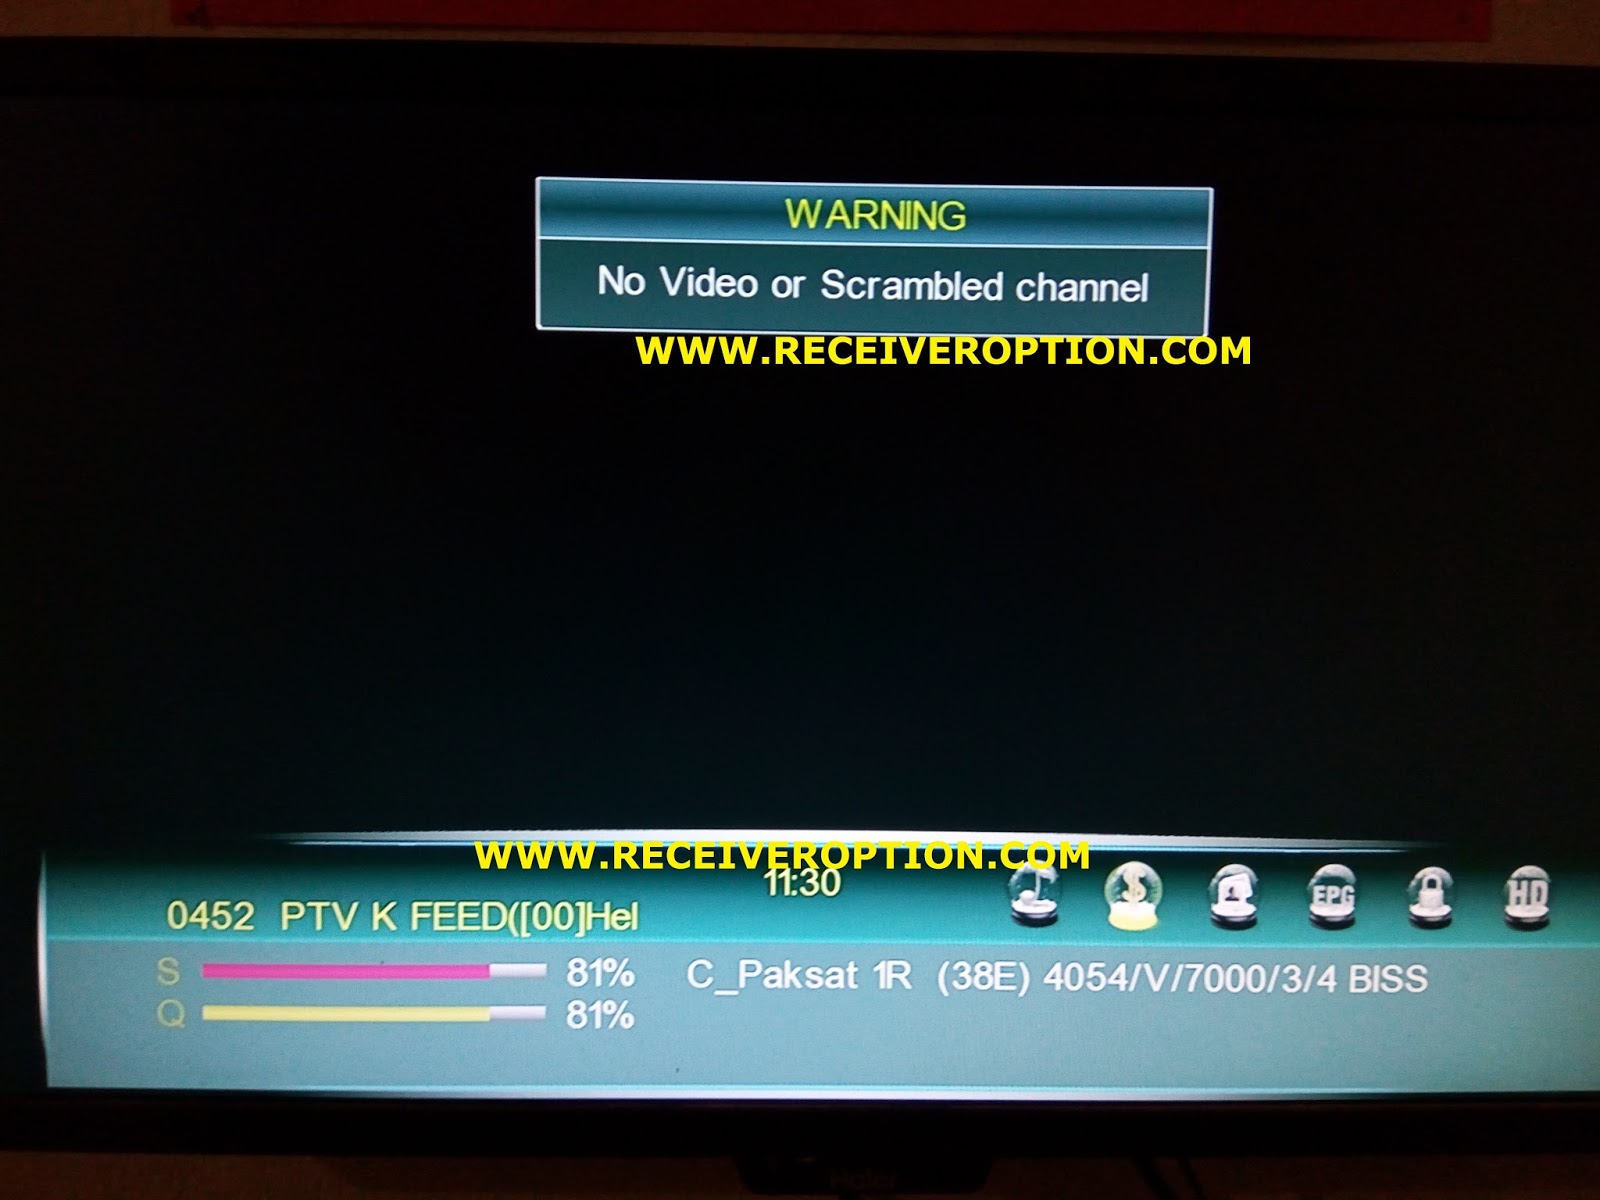 SUPER MAX SM 3000 HD 3G RECEIVER BISS KEY OPTION - HOW TO ENTER BISS